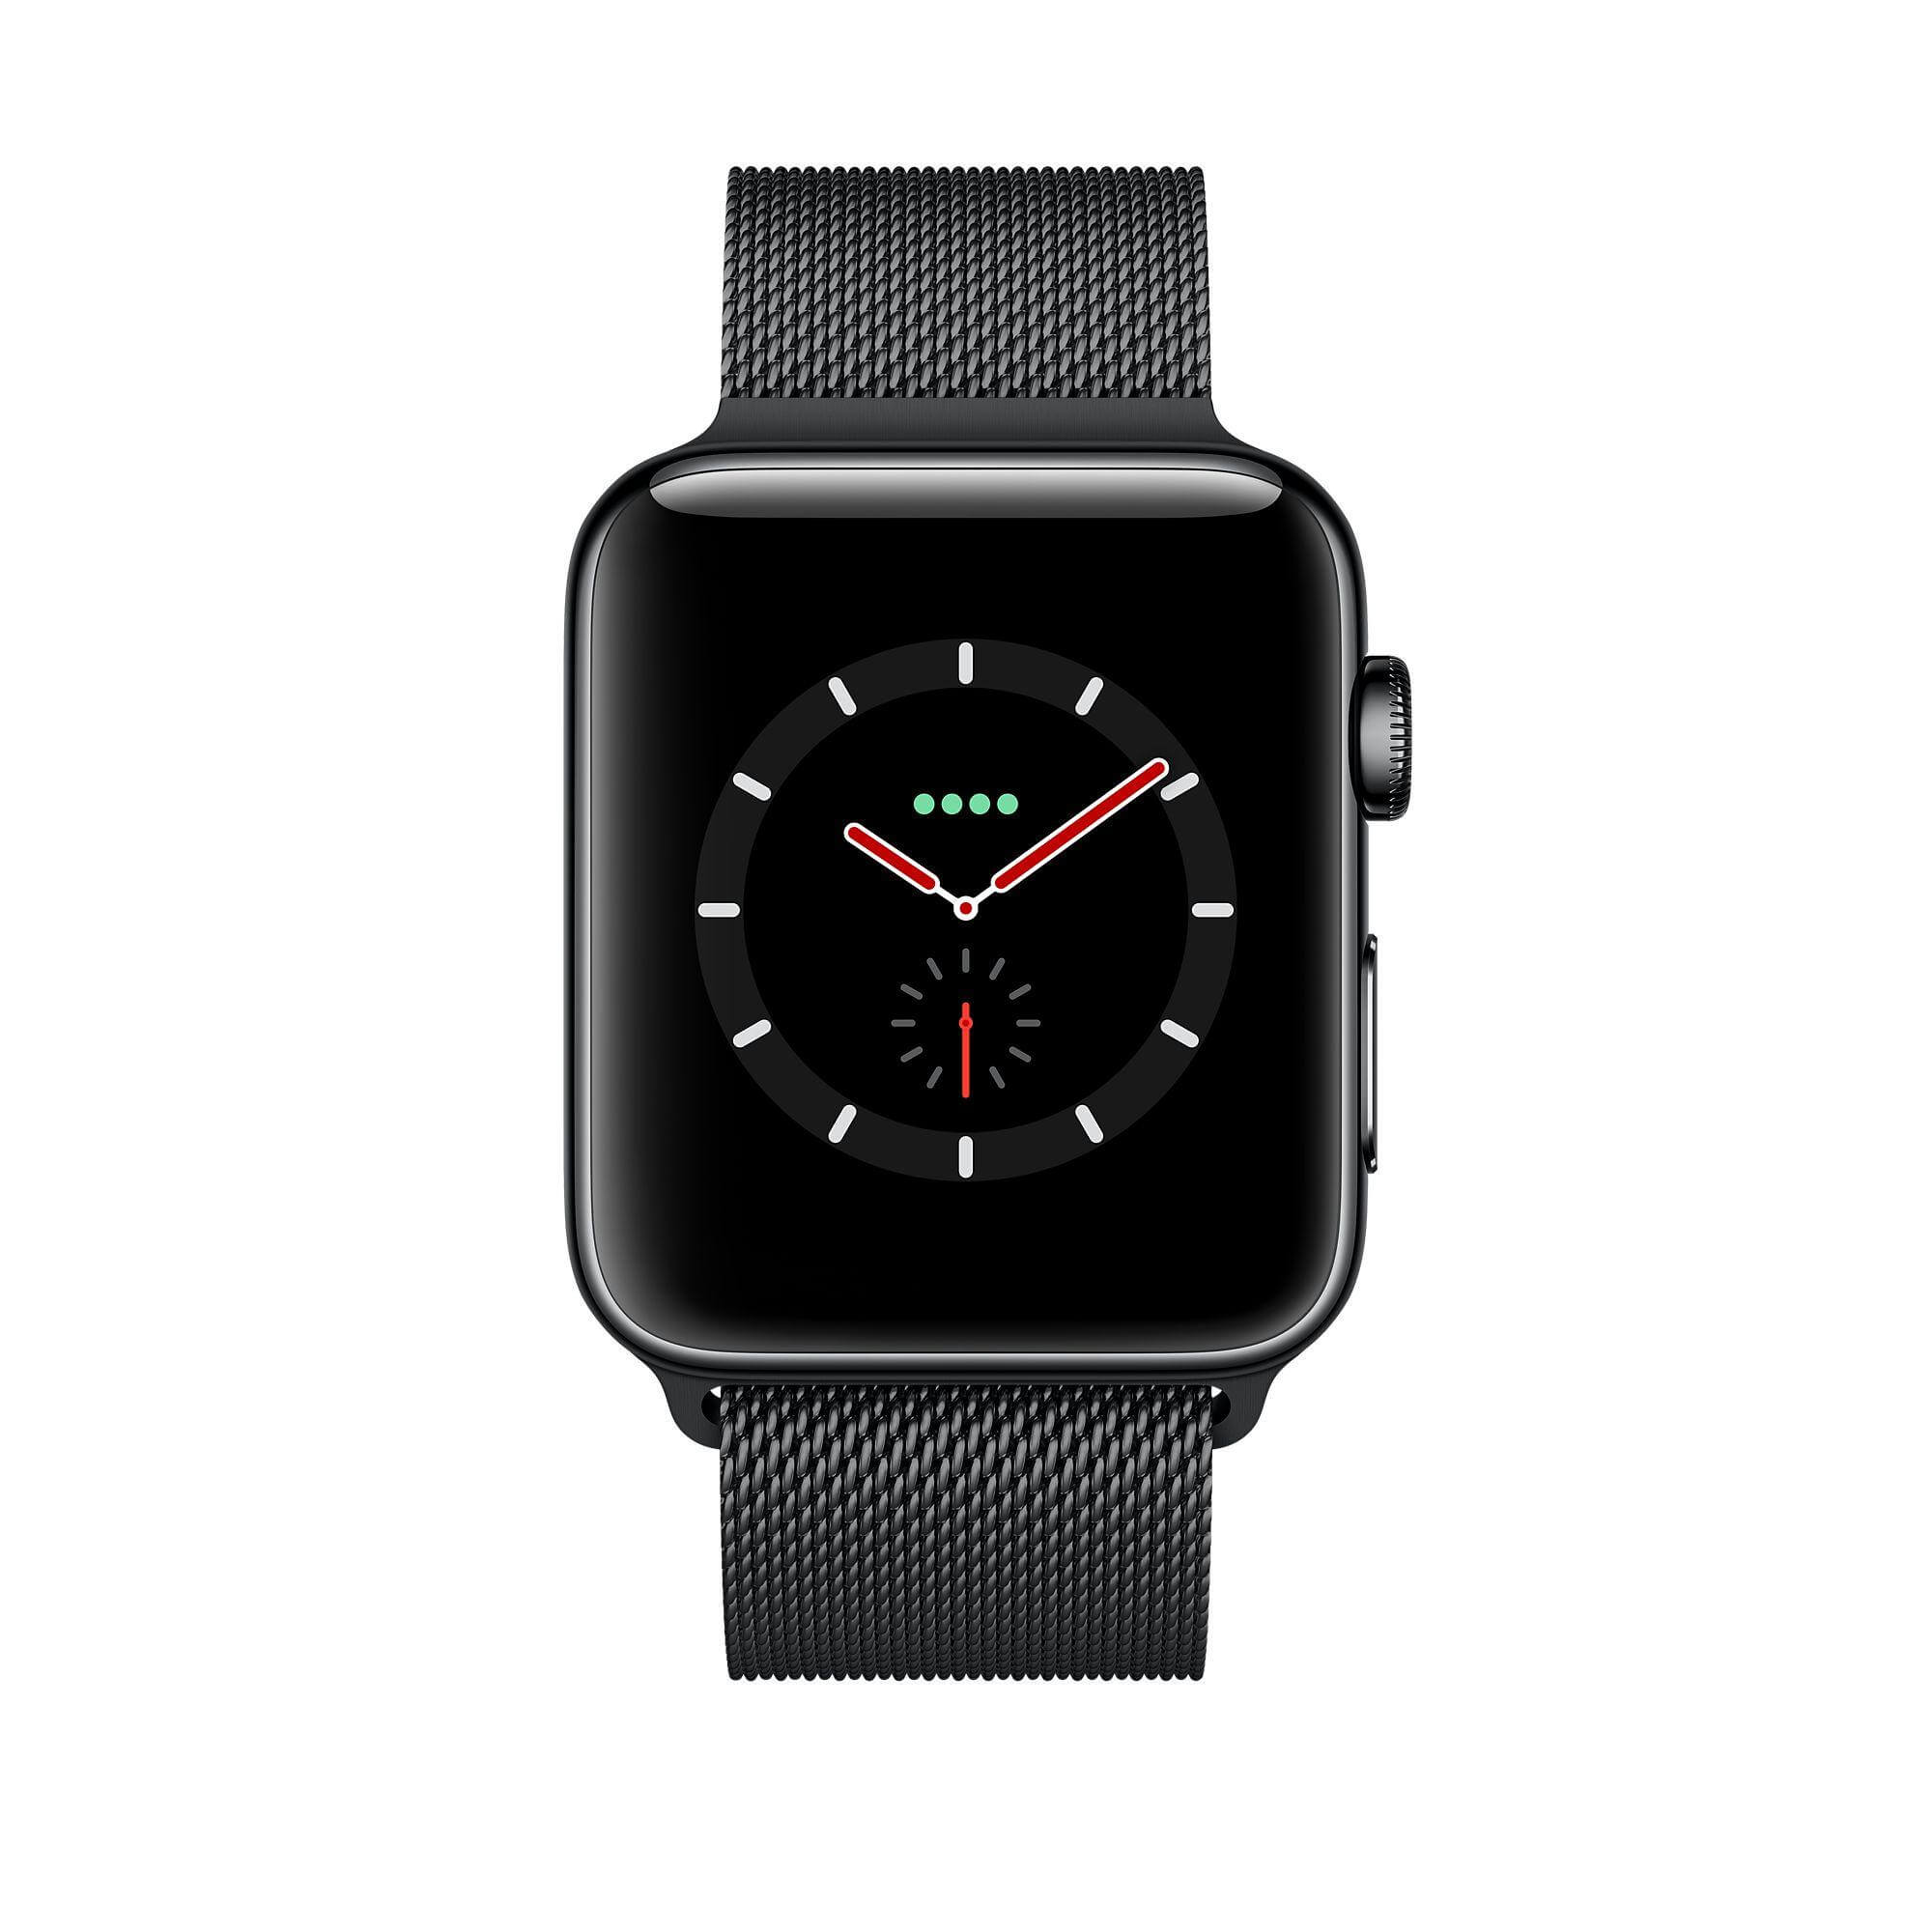 the loop party milanese black r applewatch week comments eswydkg a watches with